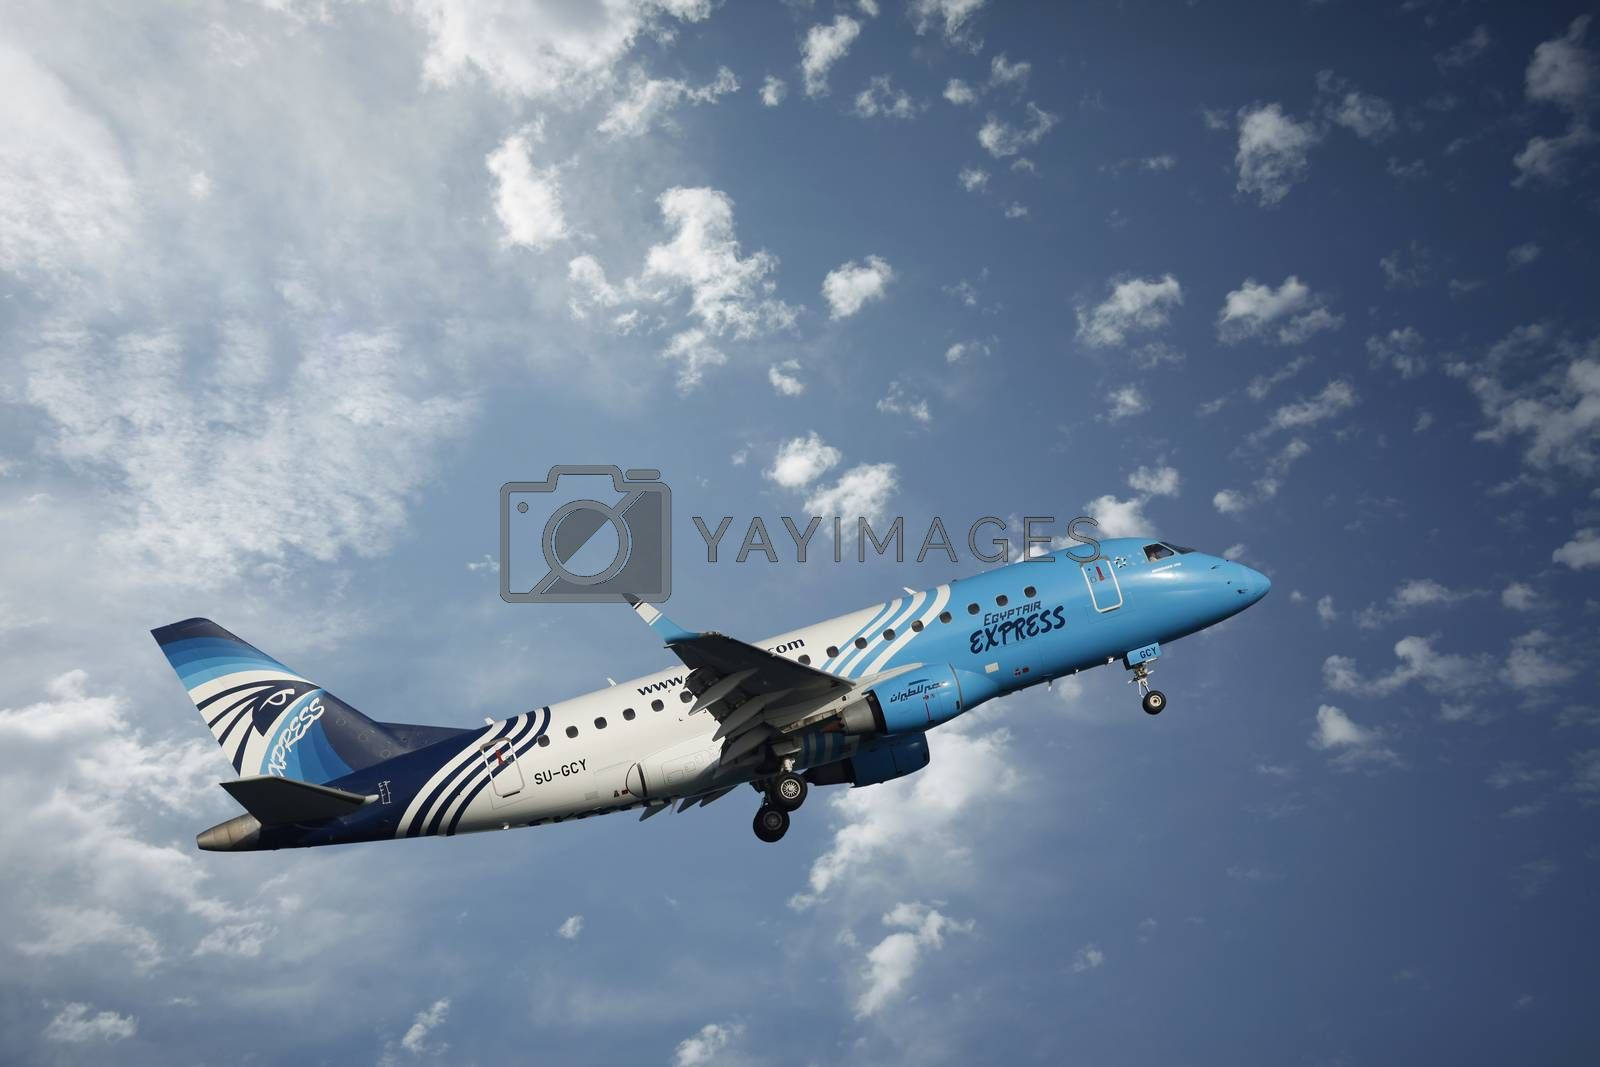 Larnaca, Cyprus - May 22, 2016: Airbus A320 airline Egypt Air in the skies over the island of Cyprus, at the airport in Larnaca, Cyprus